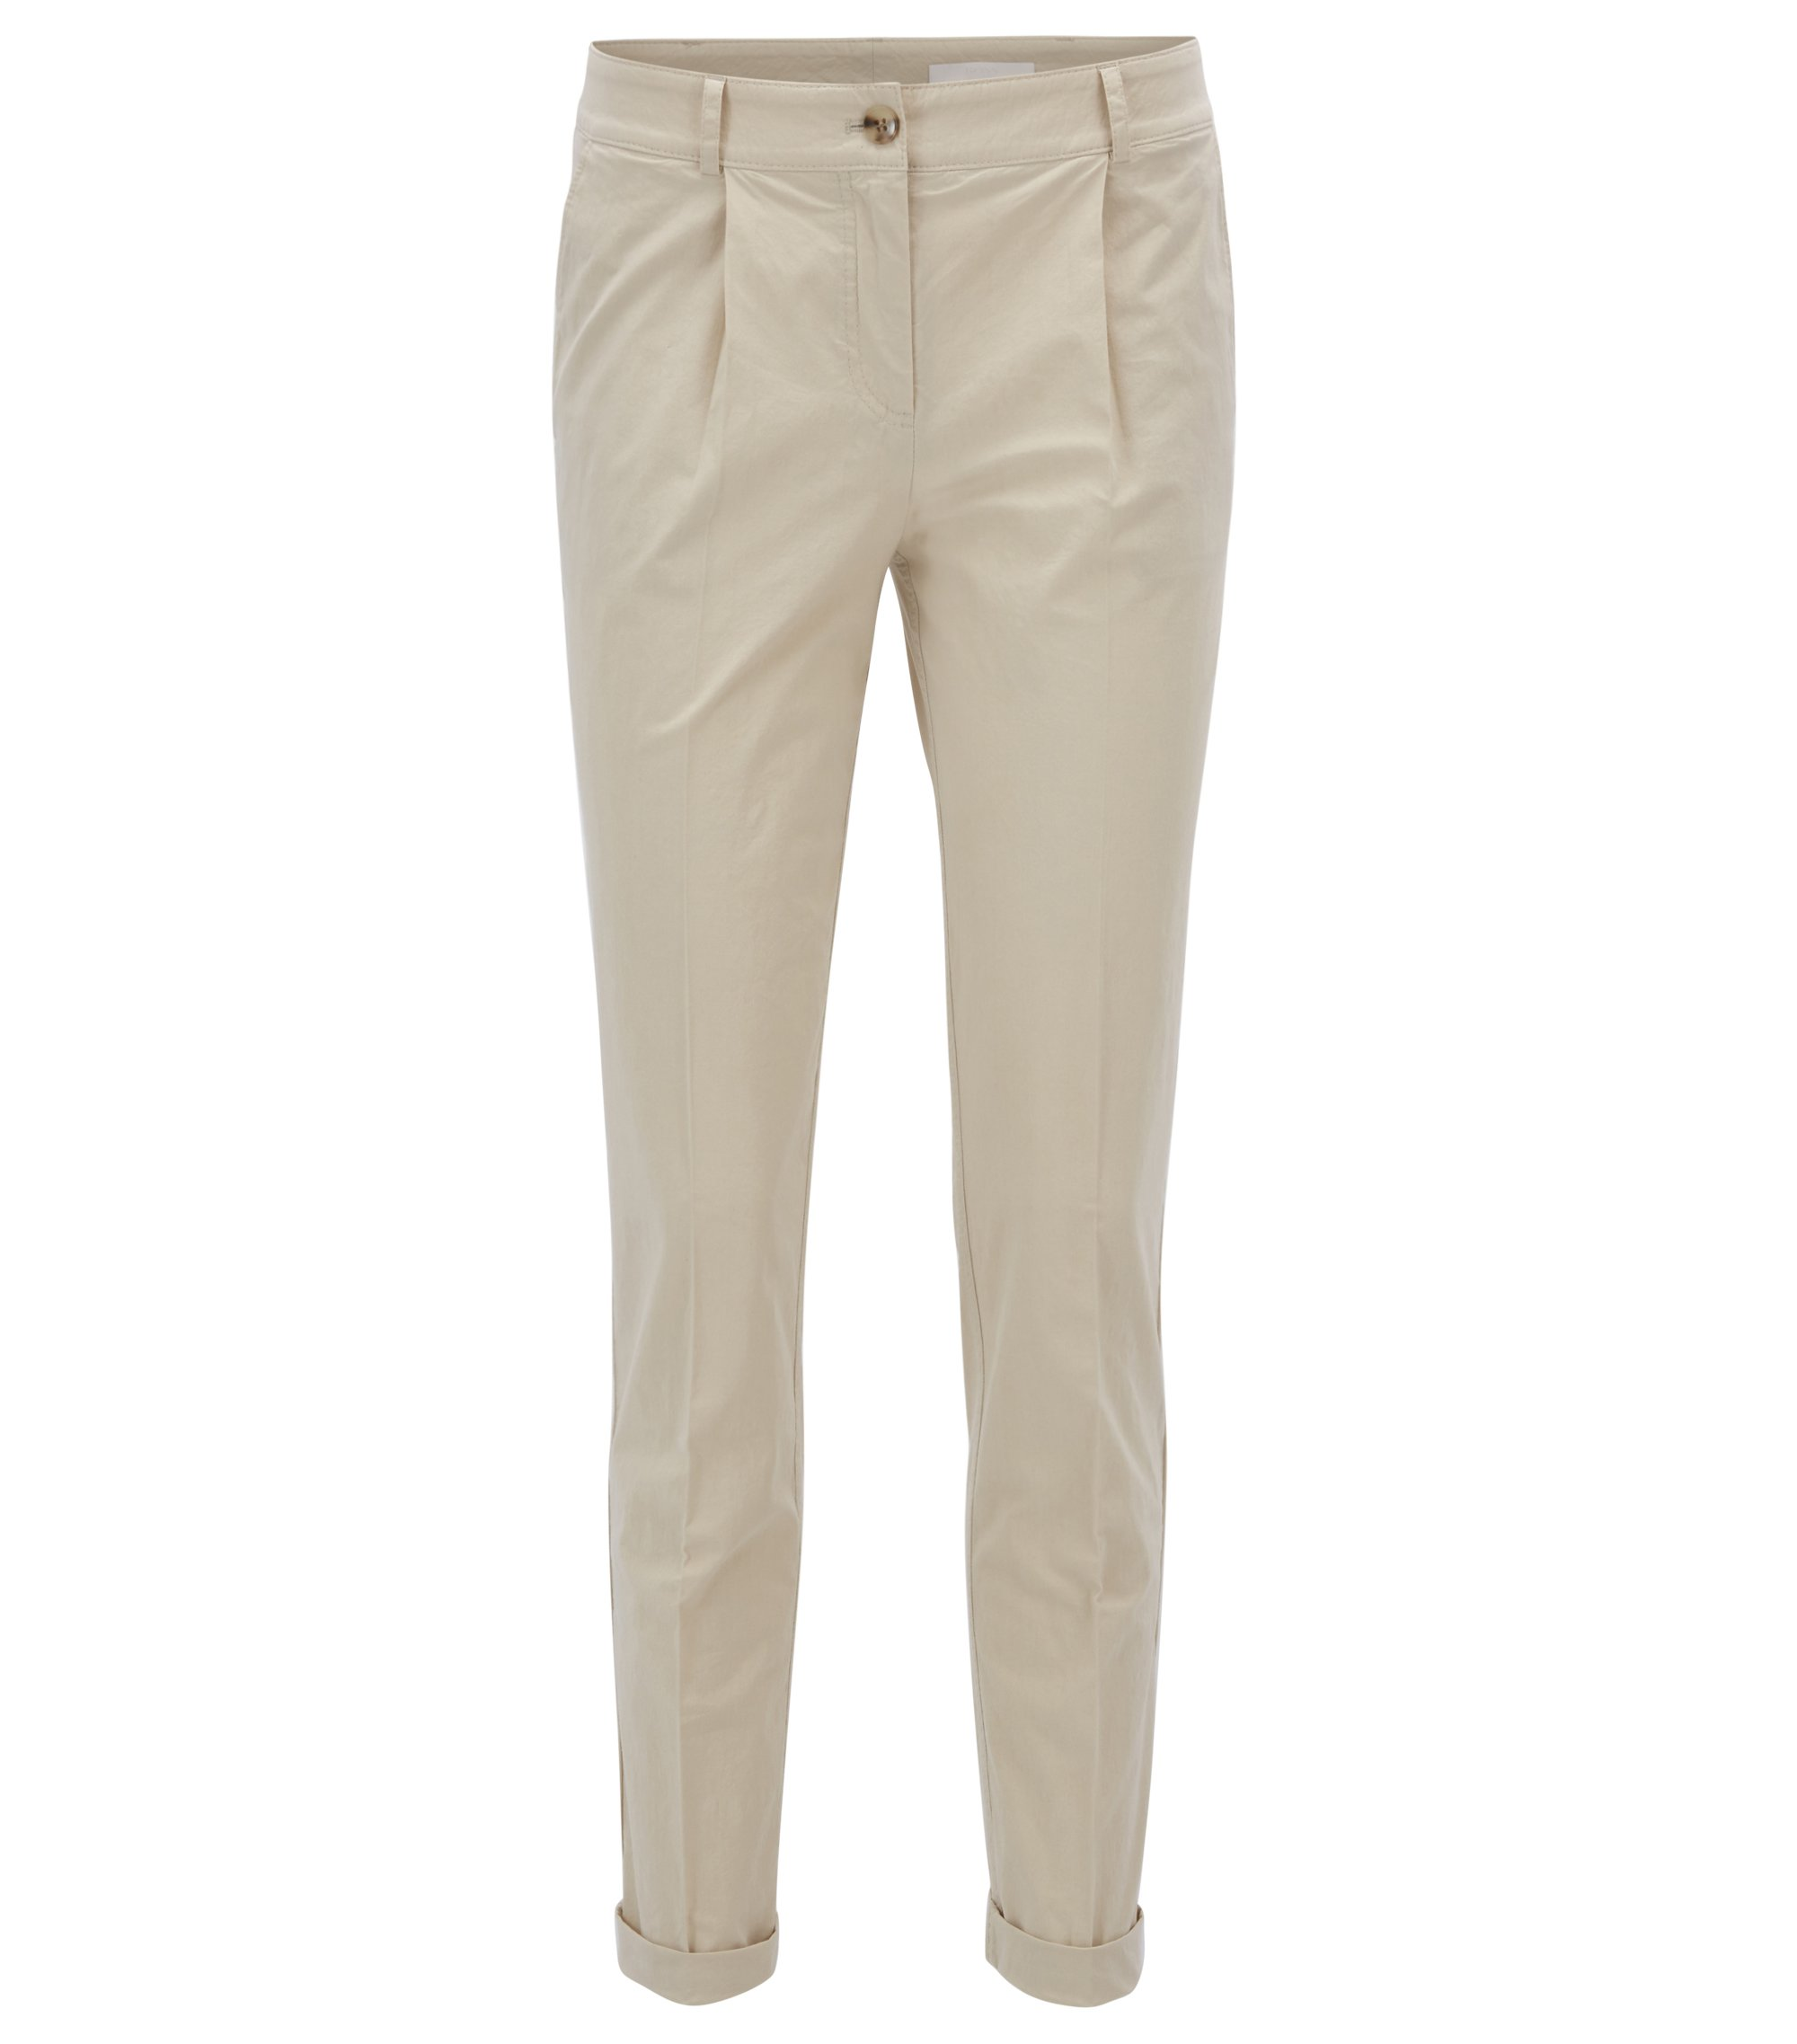 Relaxed-Fit Hose in Cropped-Länge aus Baumwoll-Mix, Hellbeige